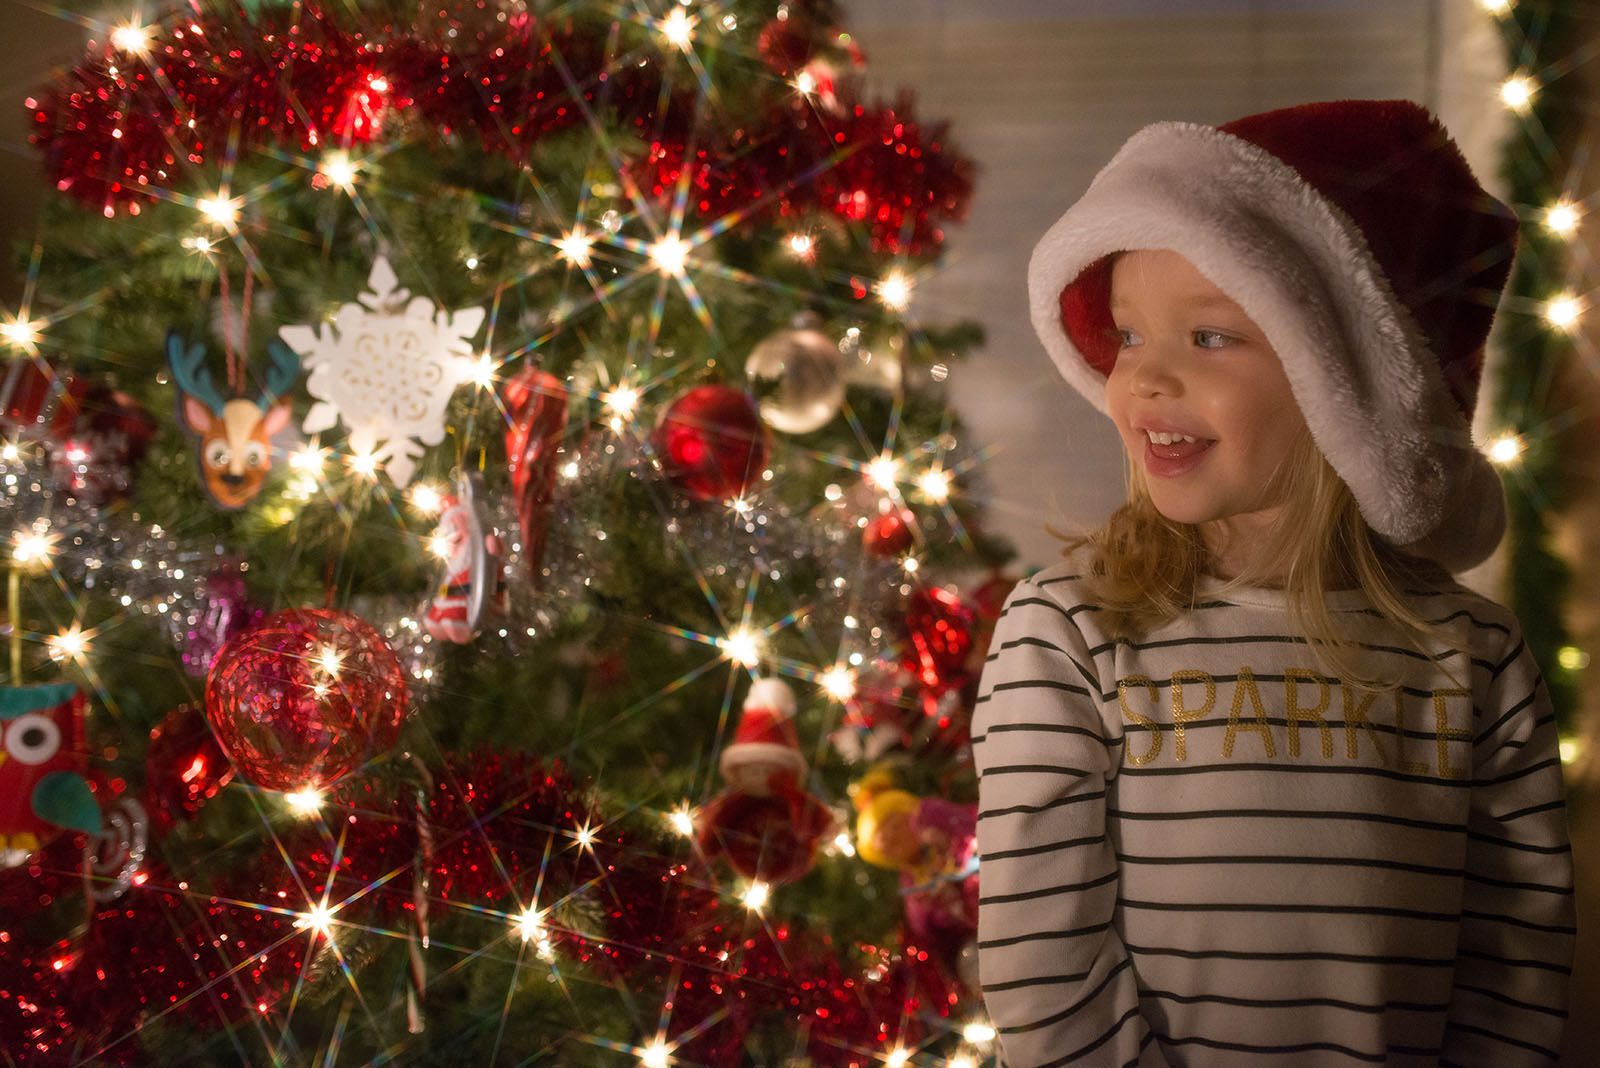 photo of girl standing in front of sparkly Christmas tree by Tiffany Kelly